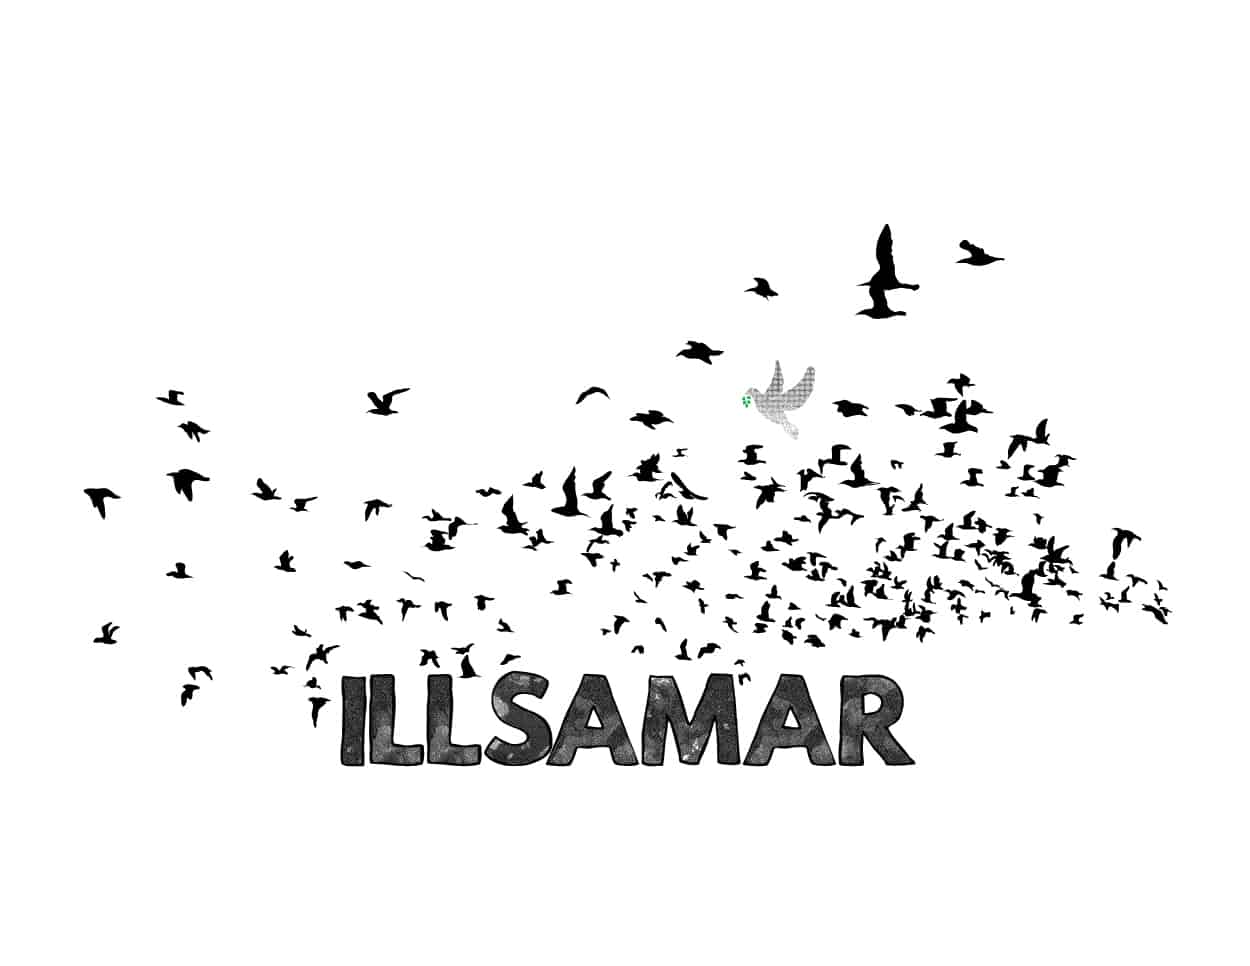 illsamar - for the birds - shirt design